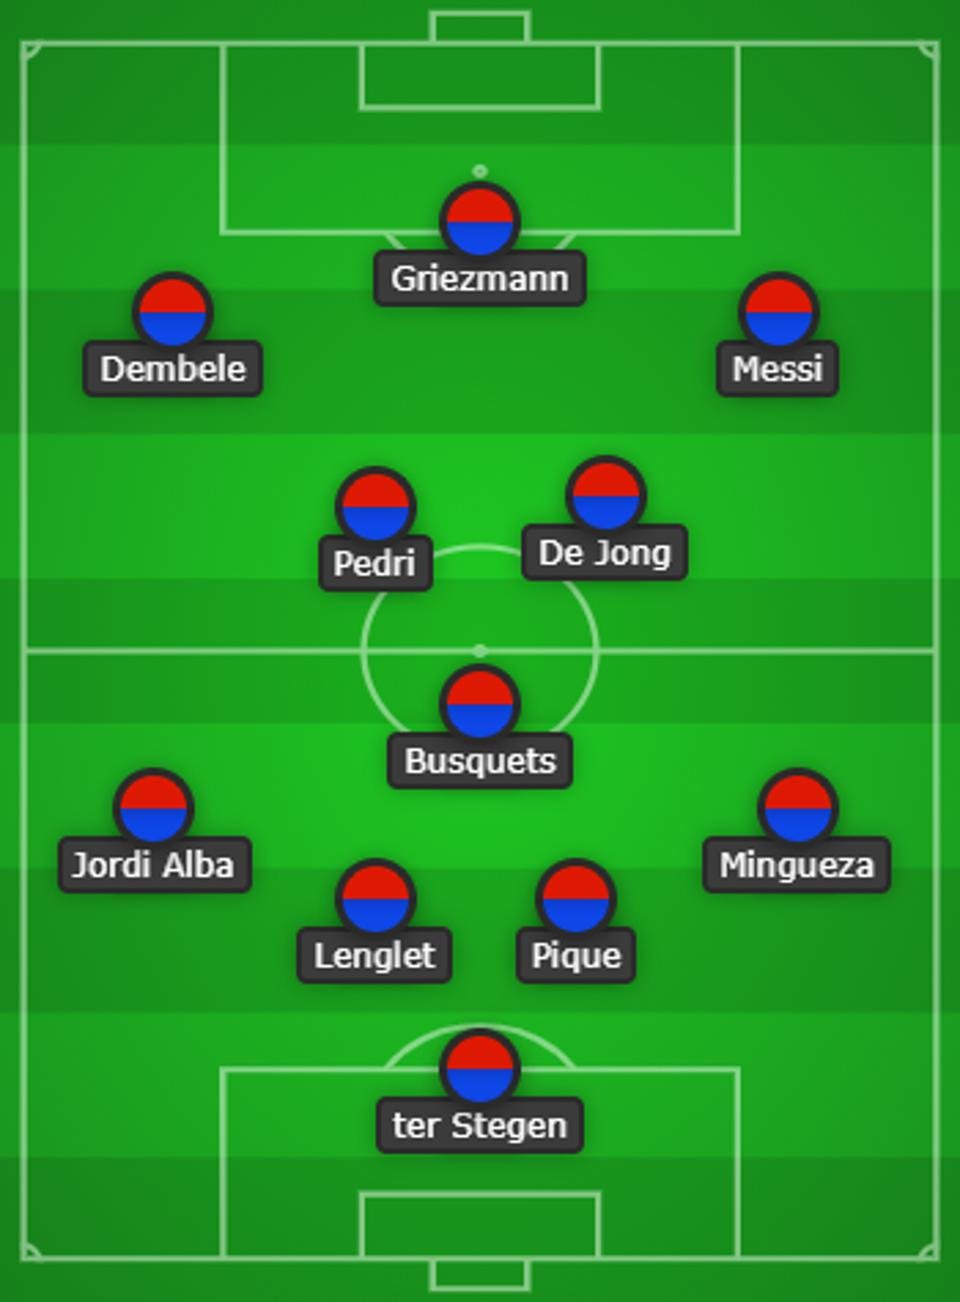 FC Barcelona will line up as such against Athletic Bilbao in the Copa del Rey final.